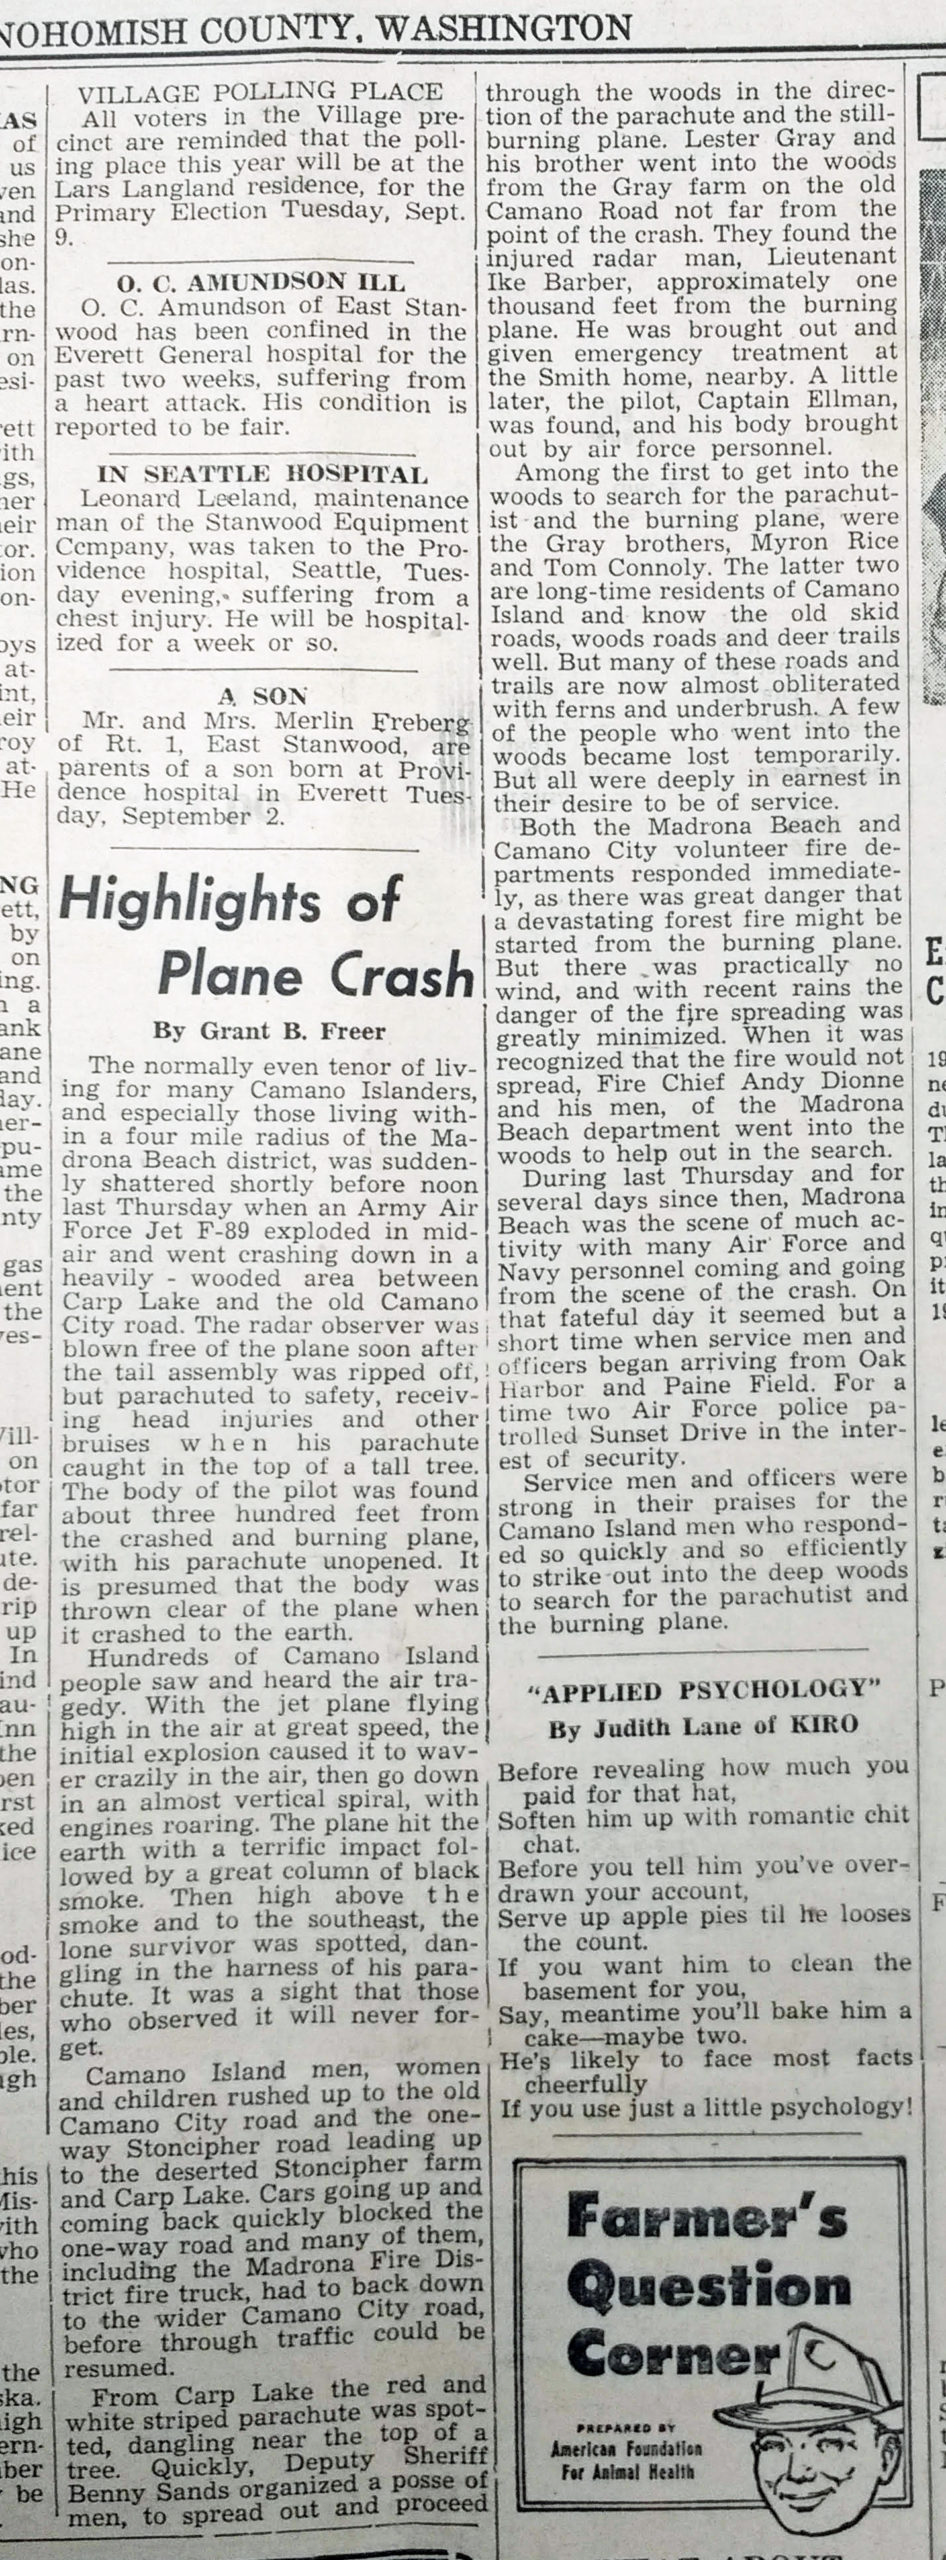 Plane Crash over Camano 1952